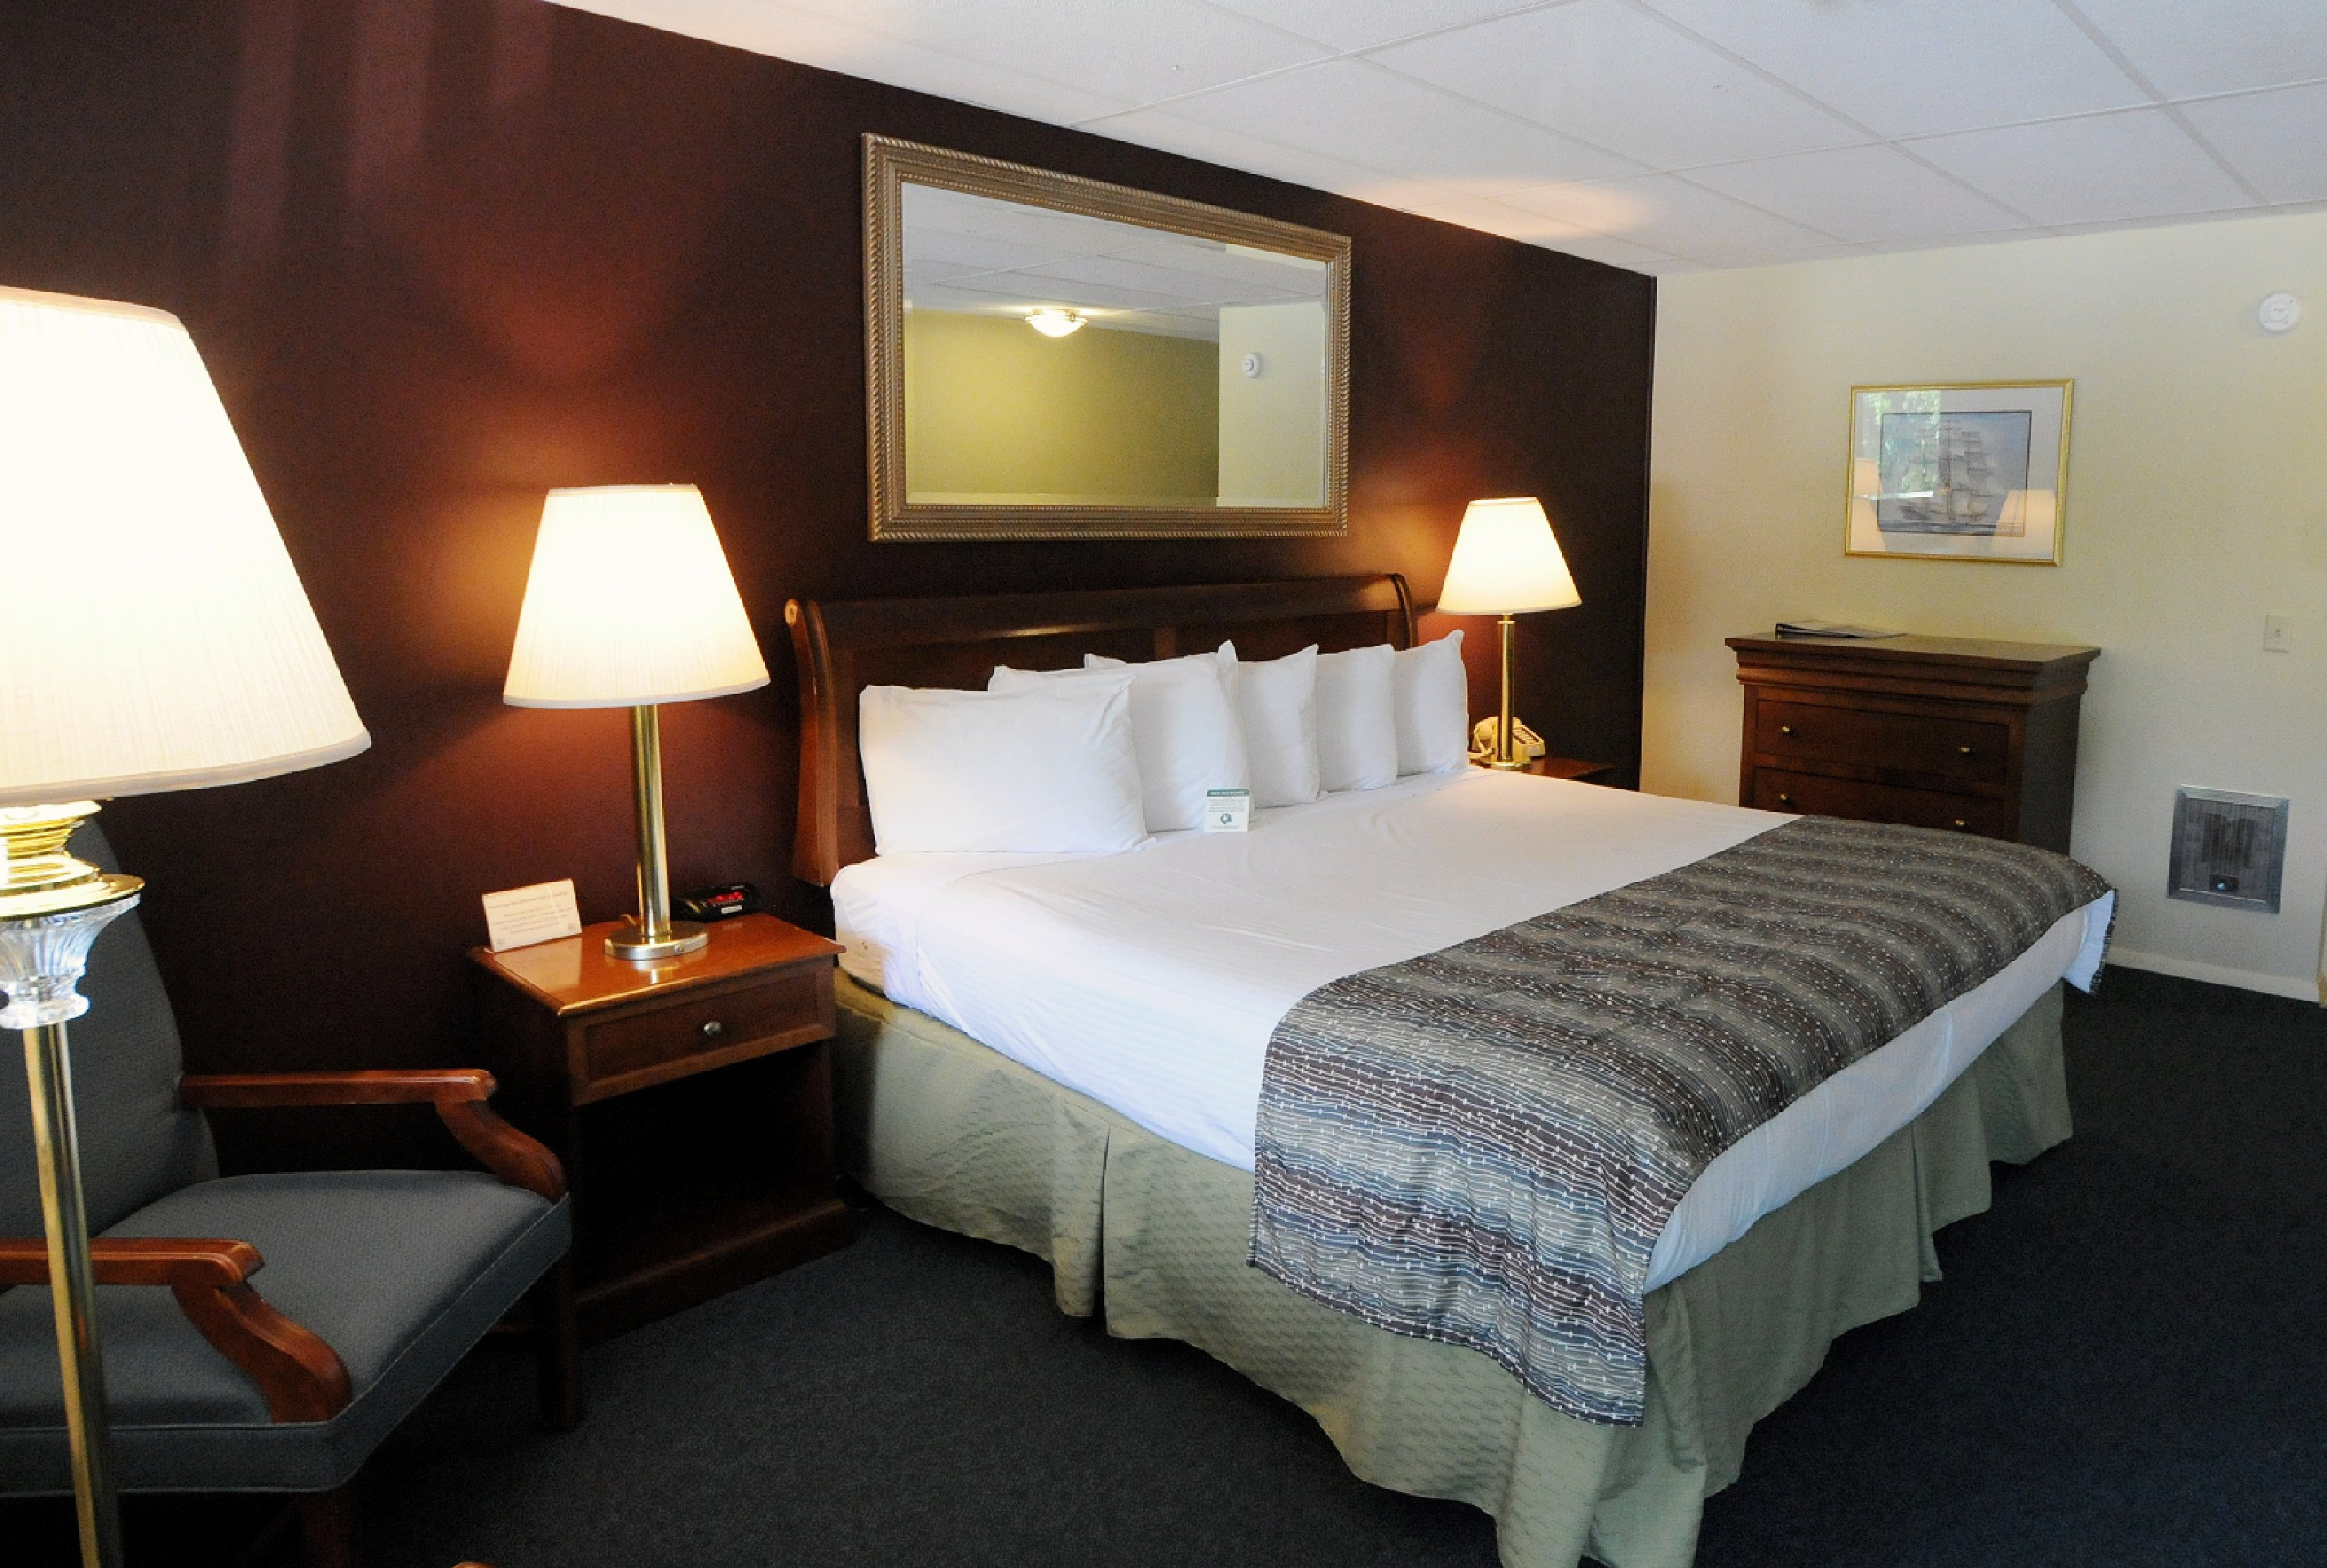 Economy room with 1 king bed